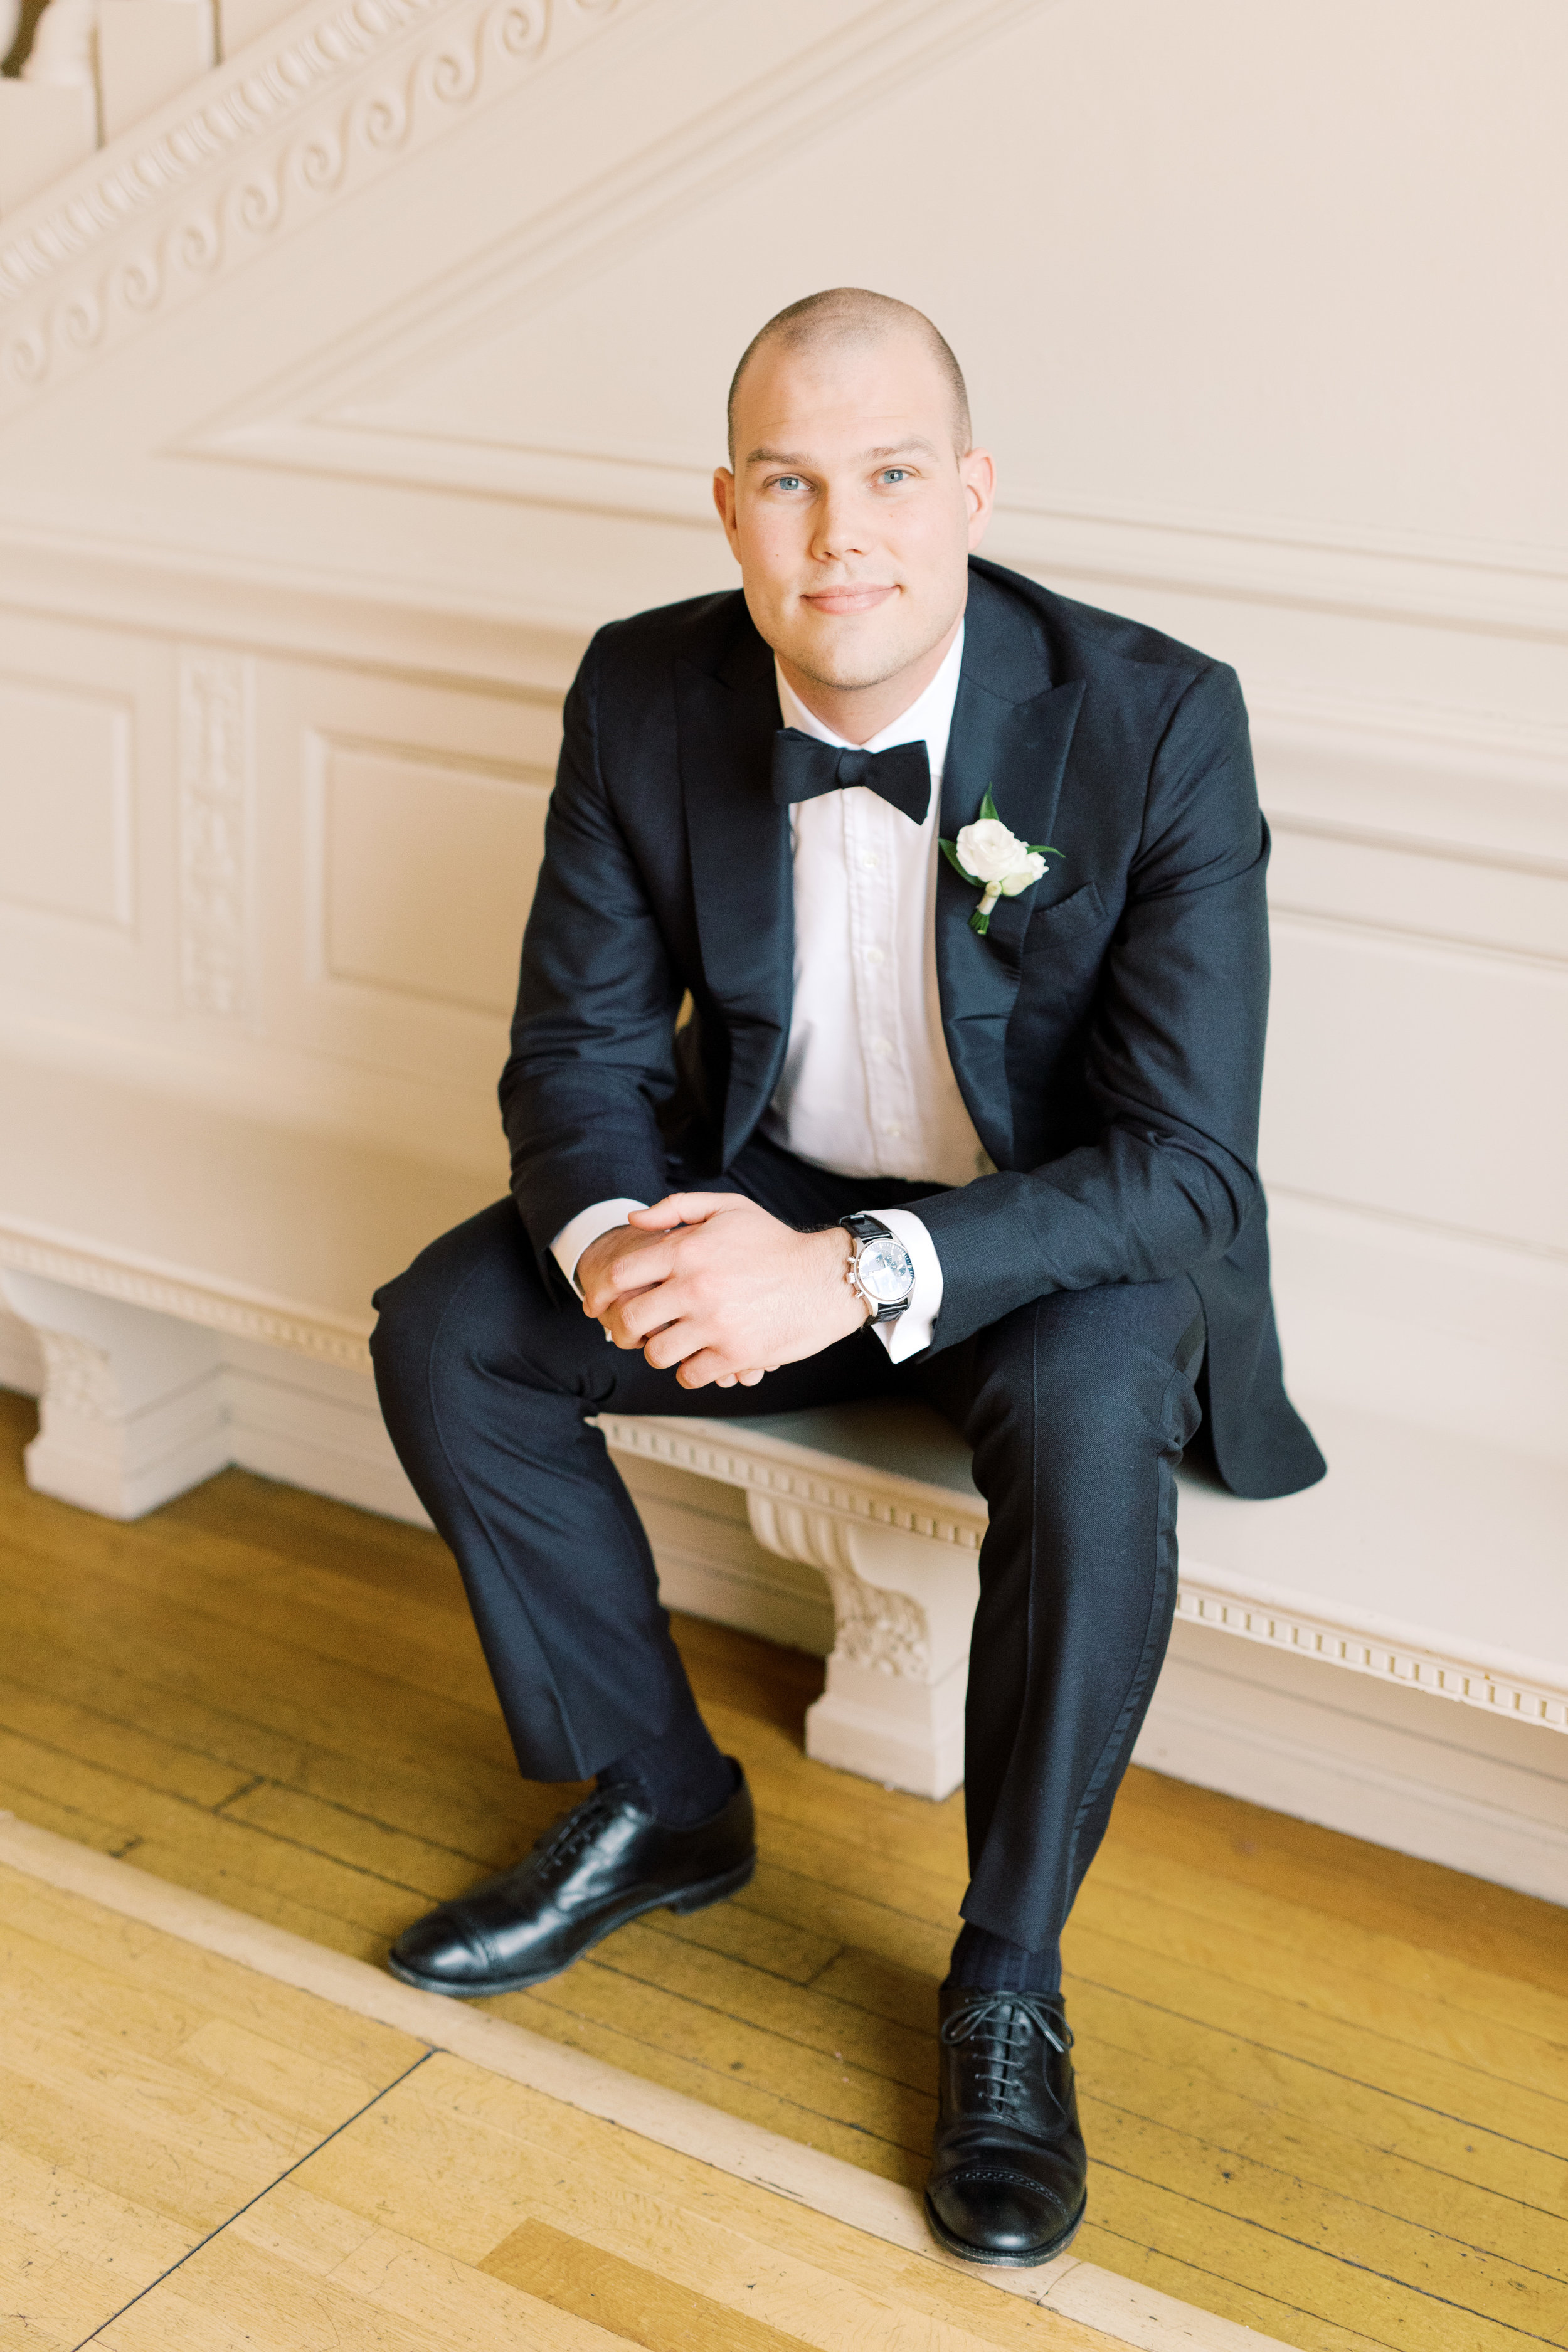 We couldn't get enough of Kevin's simple and classic black and white groom's look topped with a bowtie for this romantic and classic wedding day for their french inspired green and white Cairnwood Estate wedding